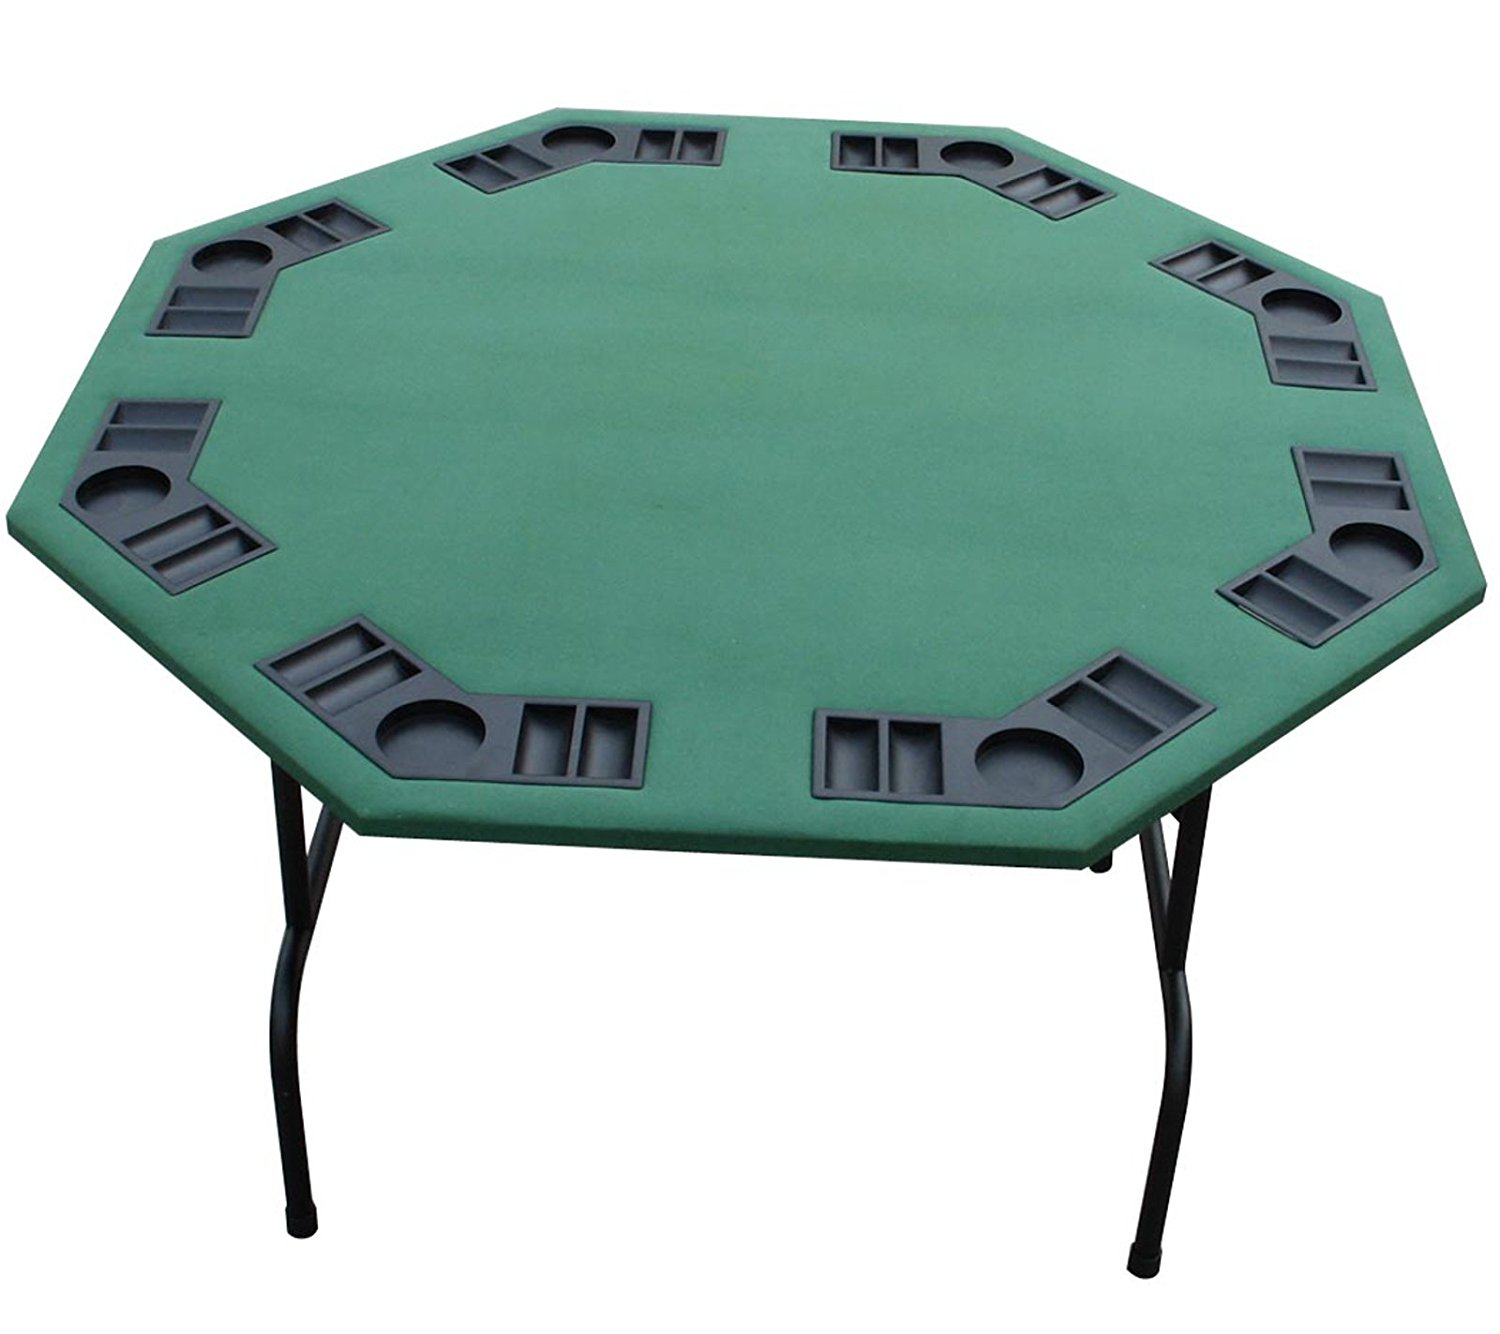 Poker Outlet Poker Card Game Table